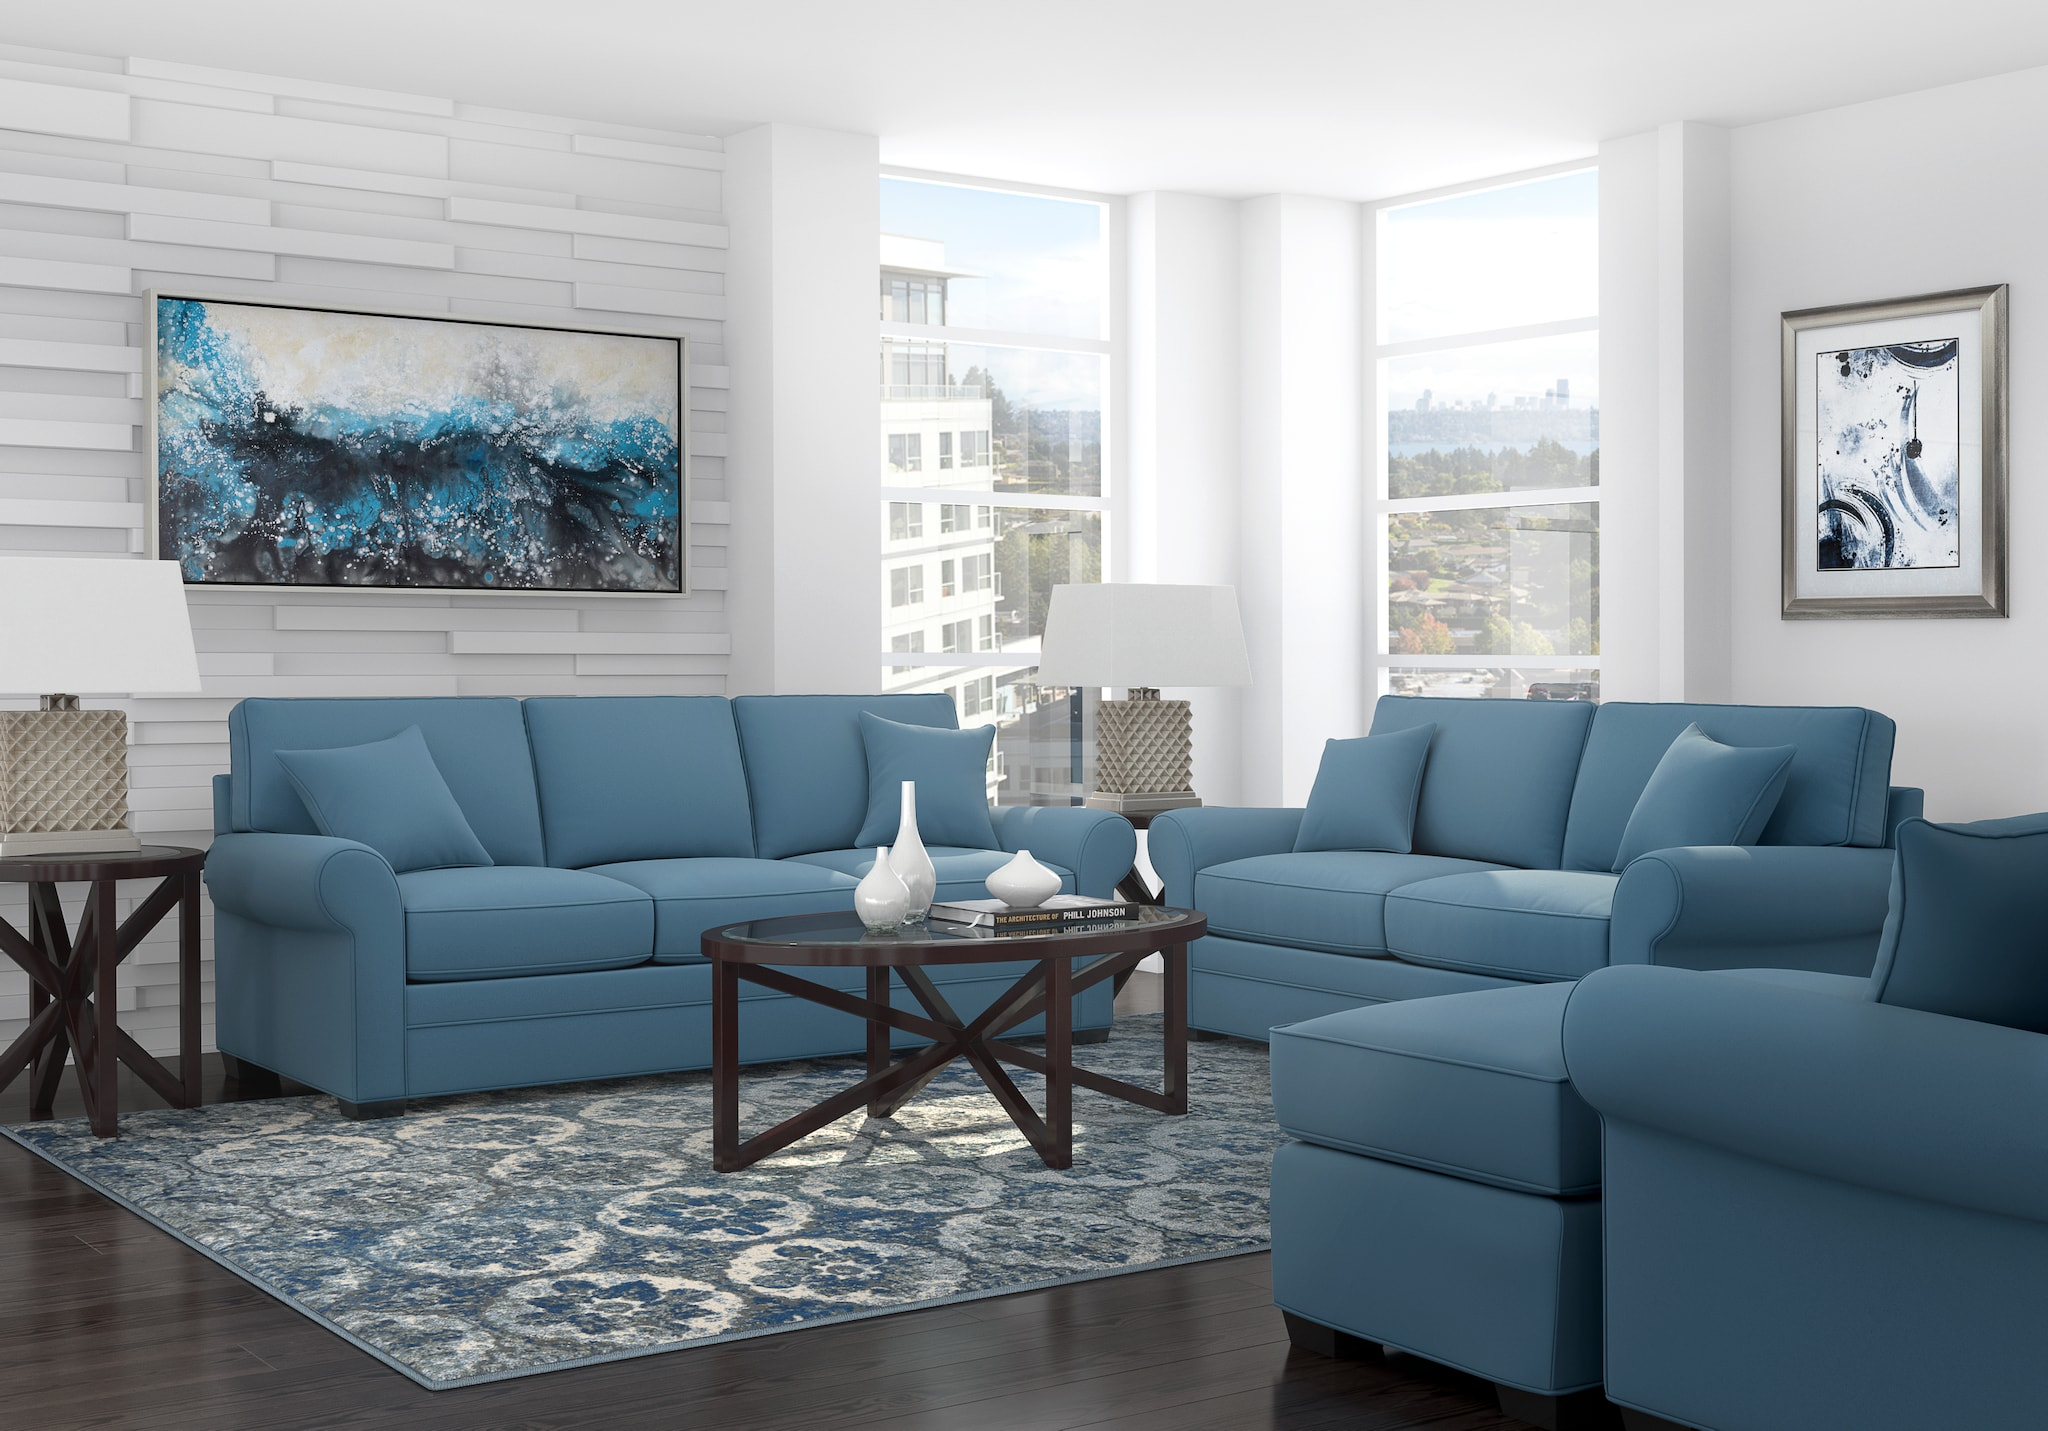 living room sets suites furniture collections bellingham indigo cindy crawford home ave six piece fabric chair and accent table set now dining mini tiffany style lamps quilt small